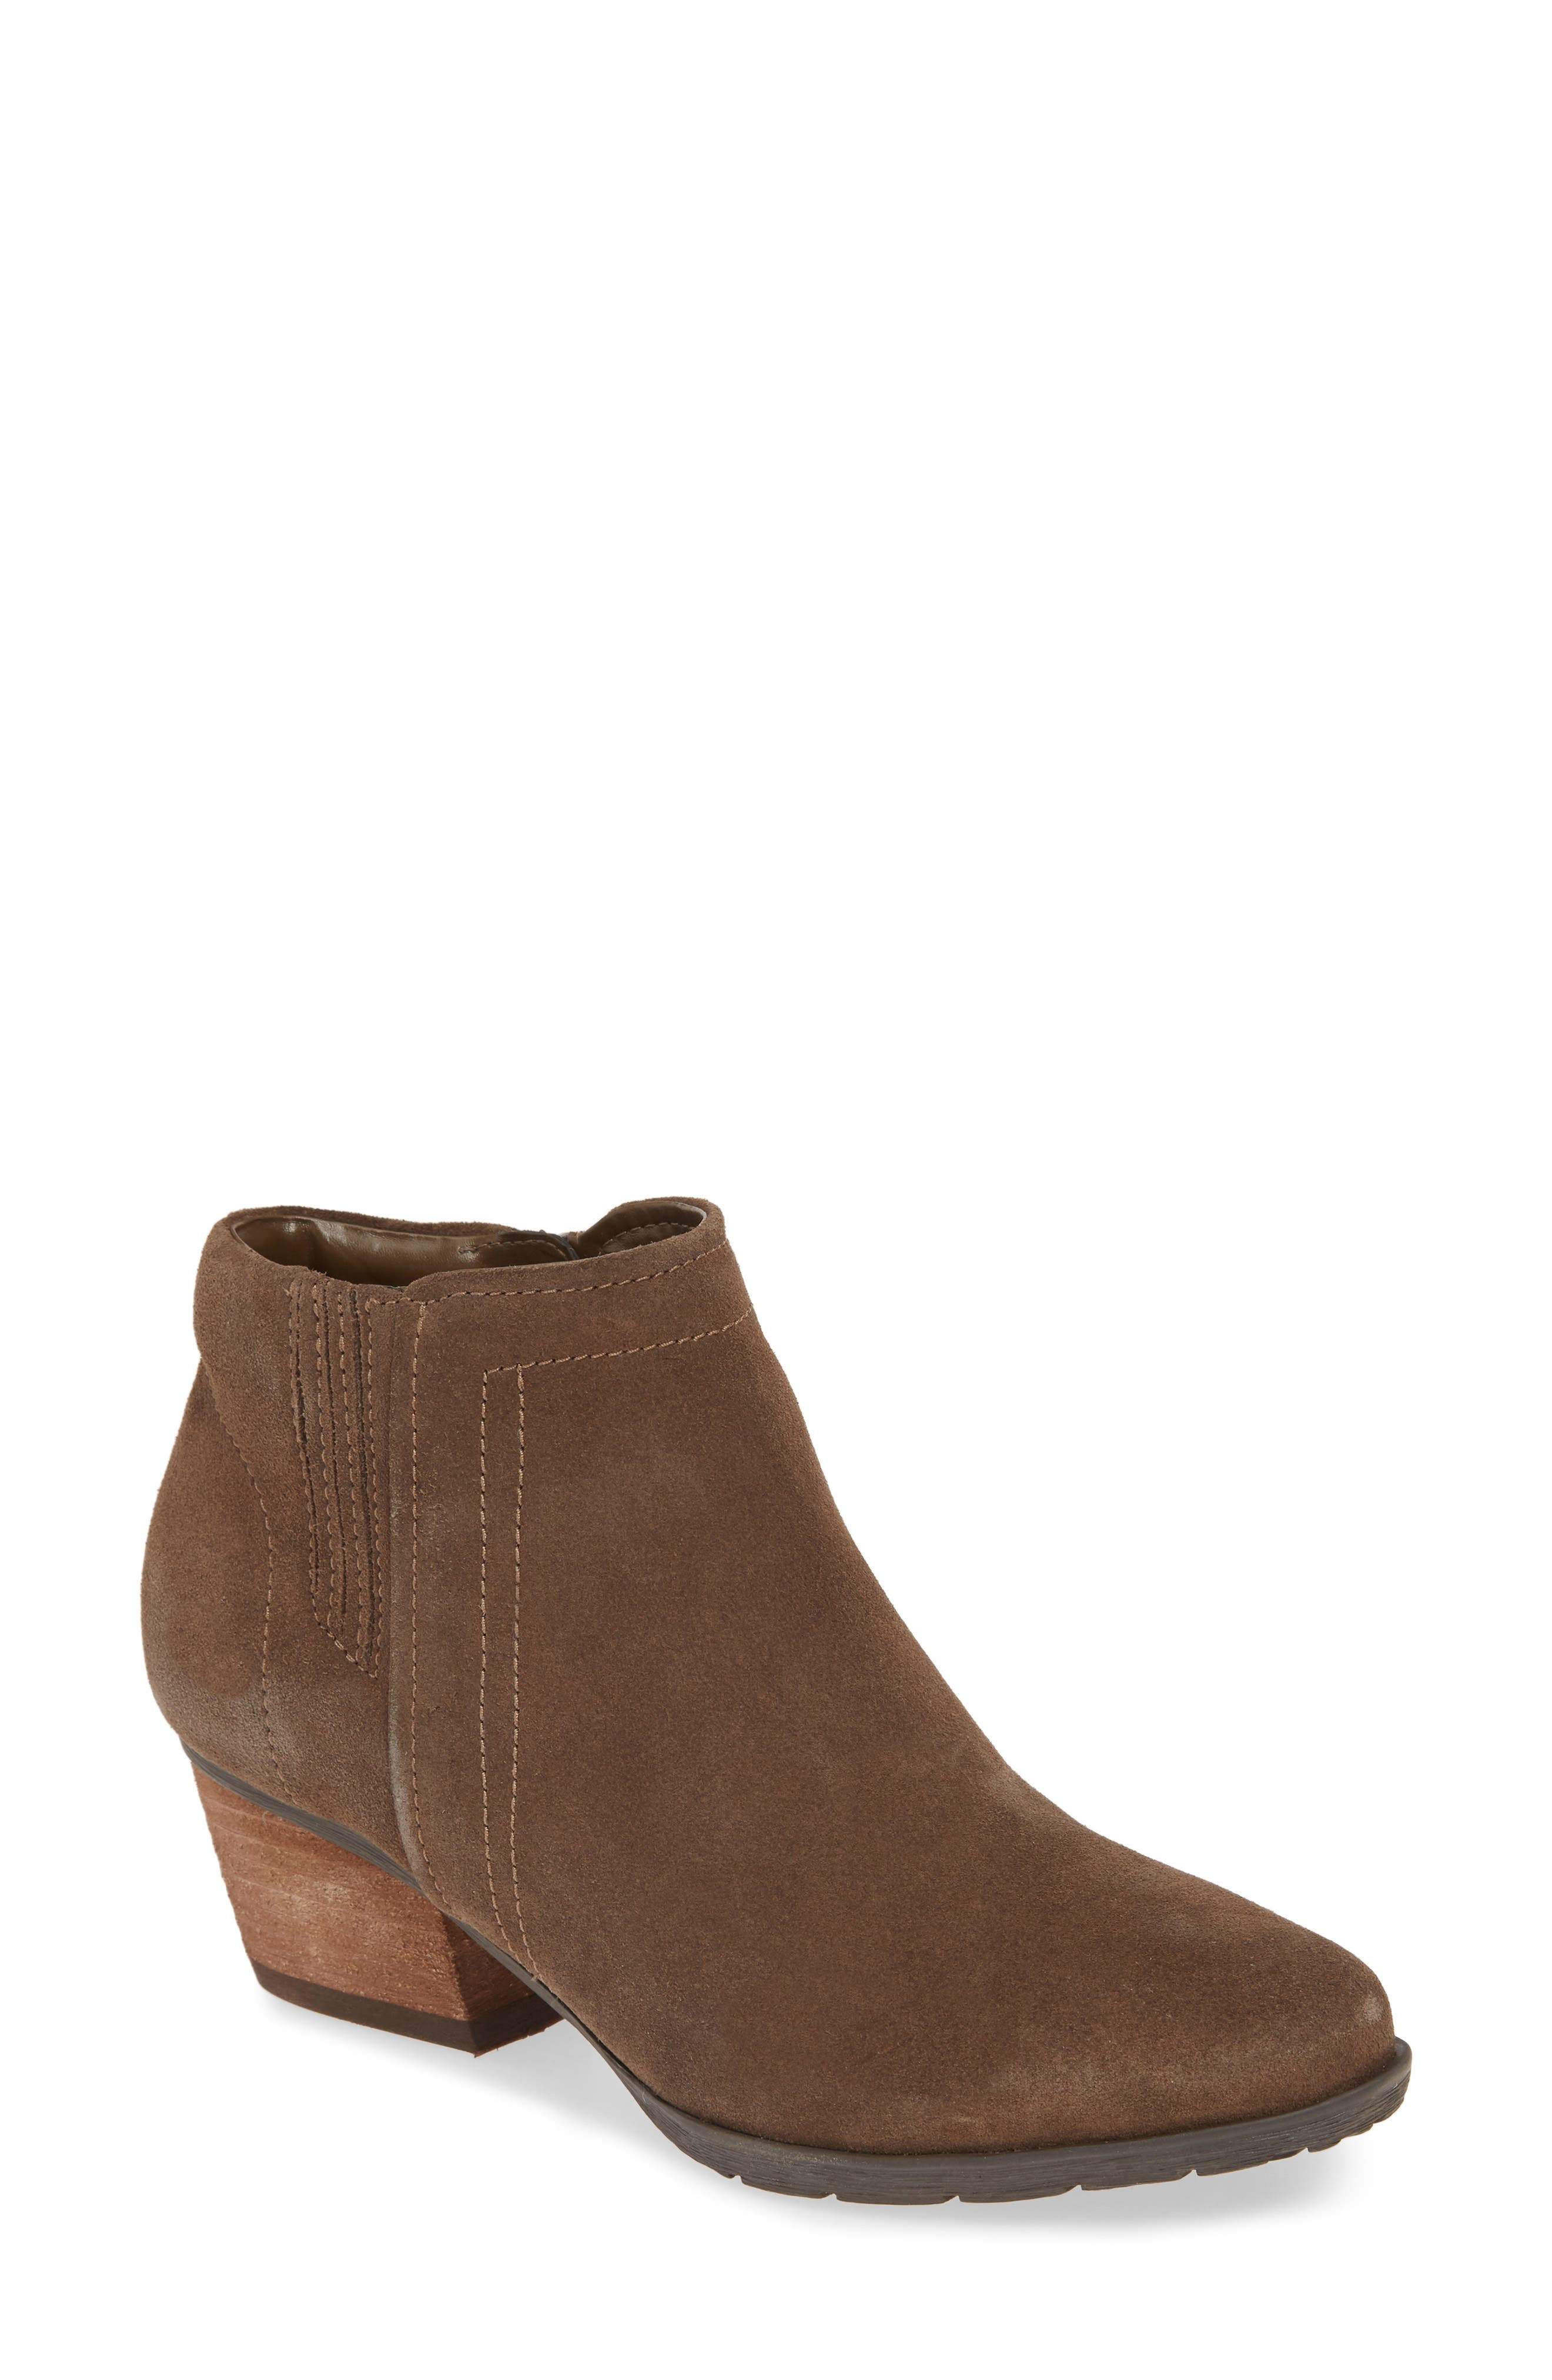 Blondo Valli 2.0 Waterproof Bootie (Women) (Nordstrom Exclusive)